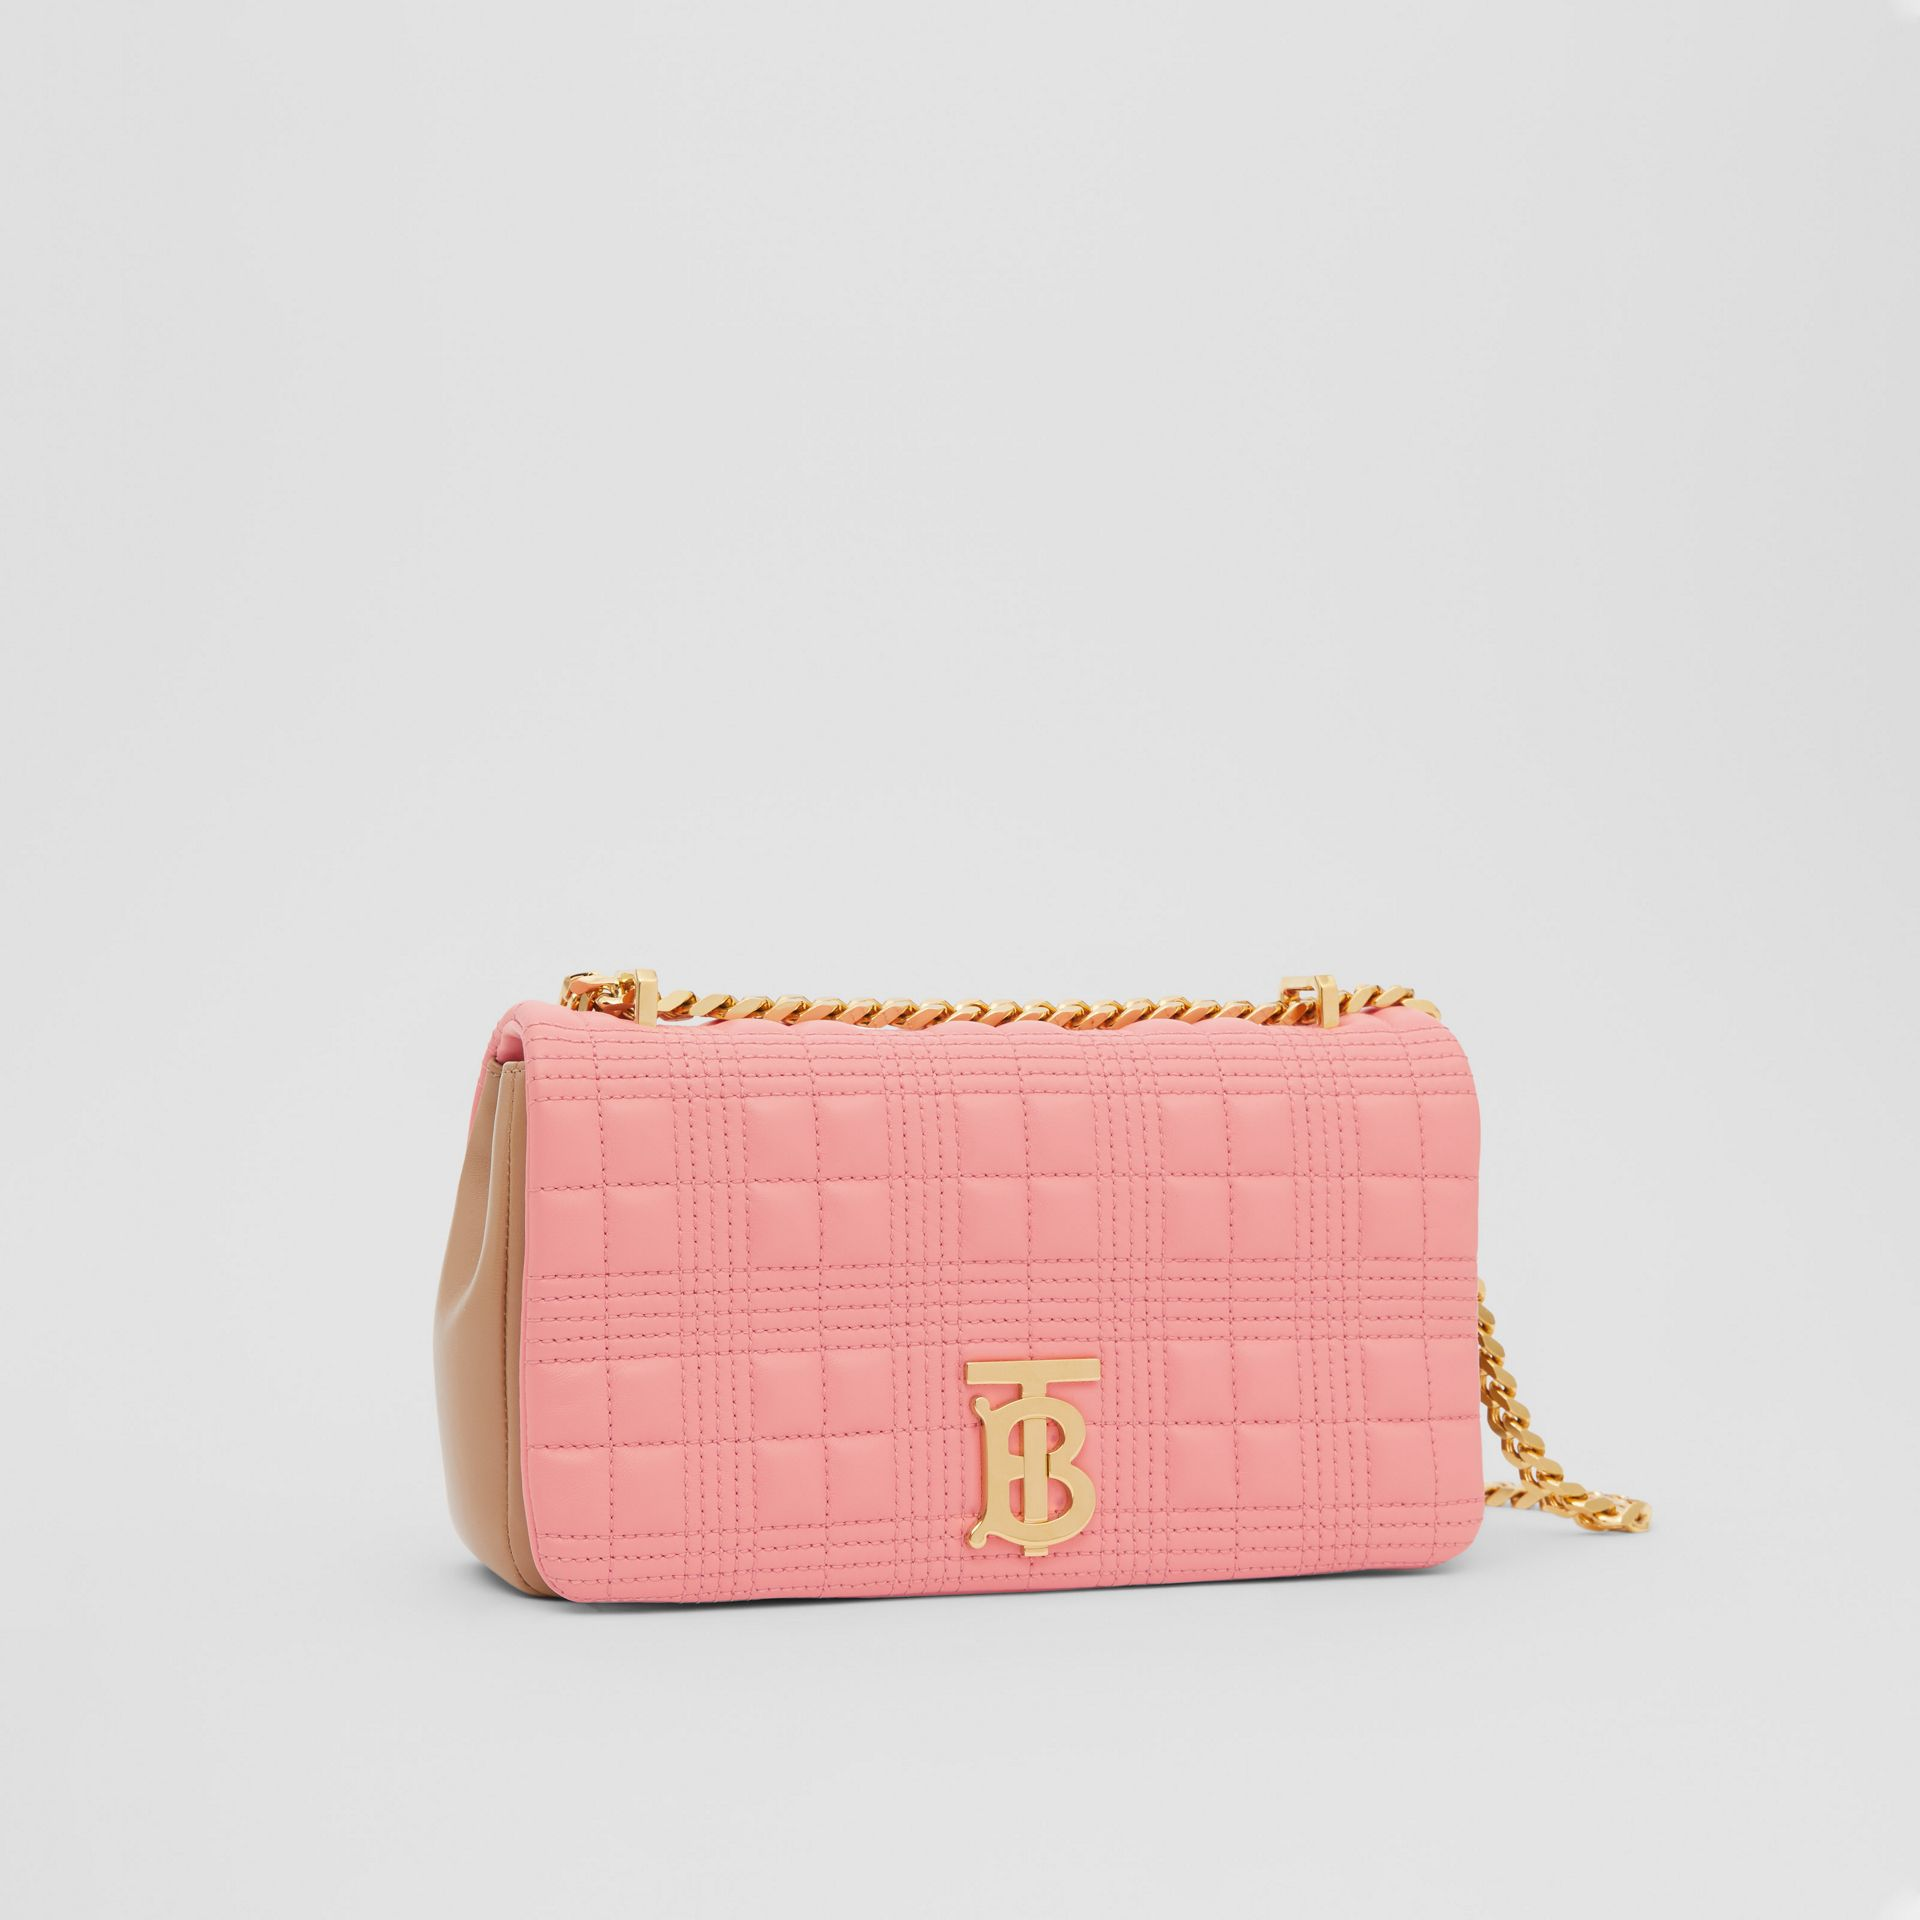 Small Quilted Two-tone Lambskin Lola Bag in Peony/camel - Women | Burberry Canada - gallery image 6